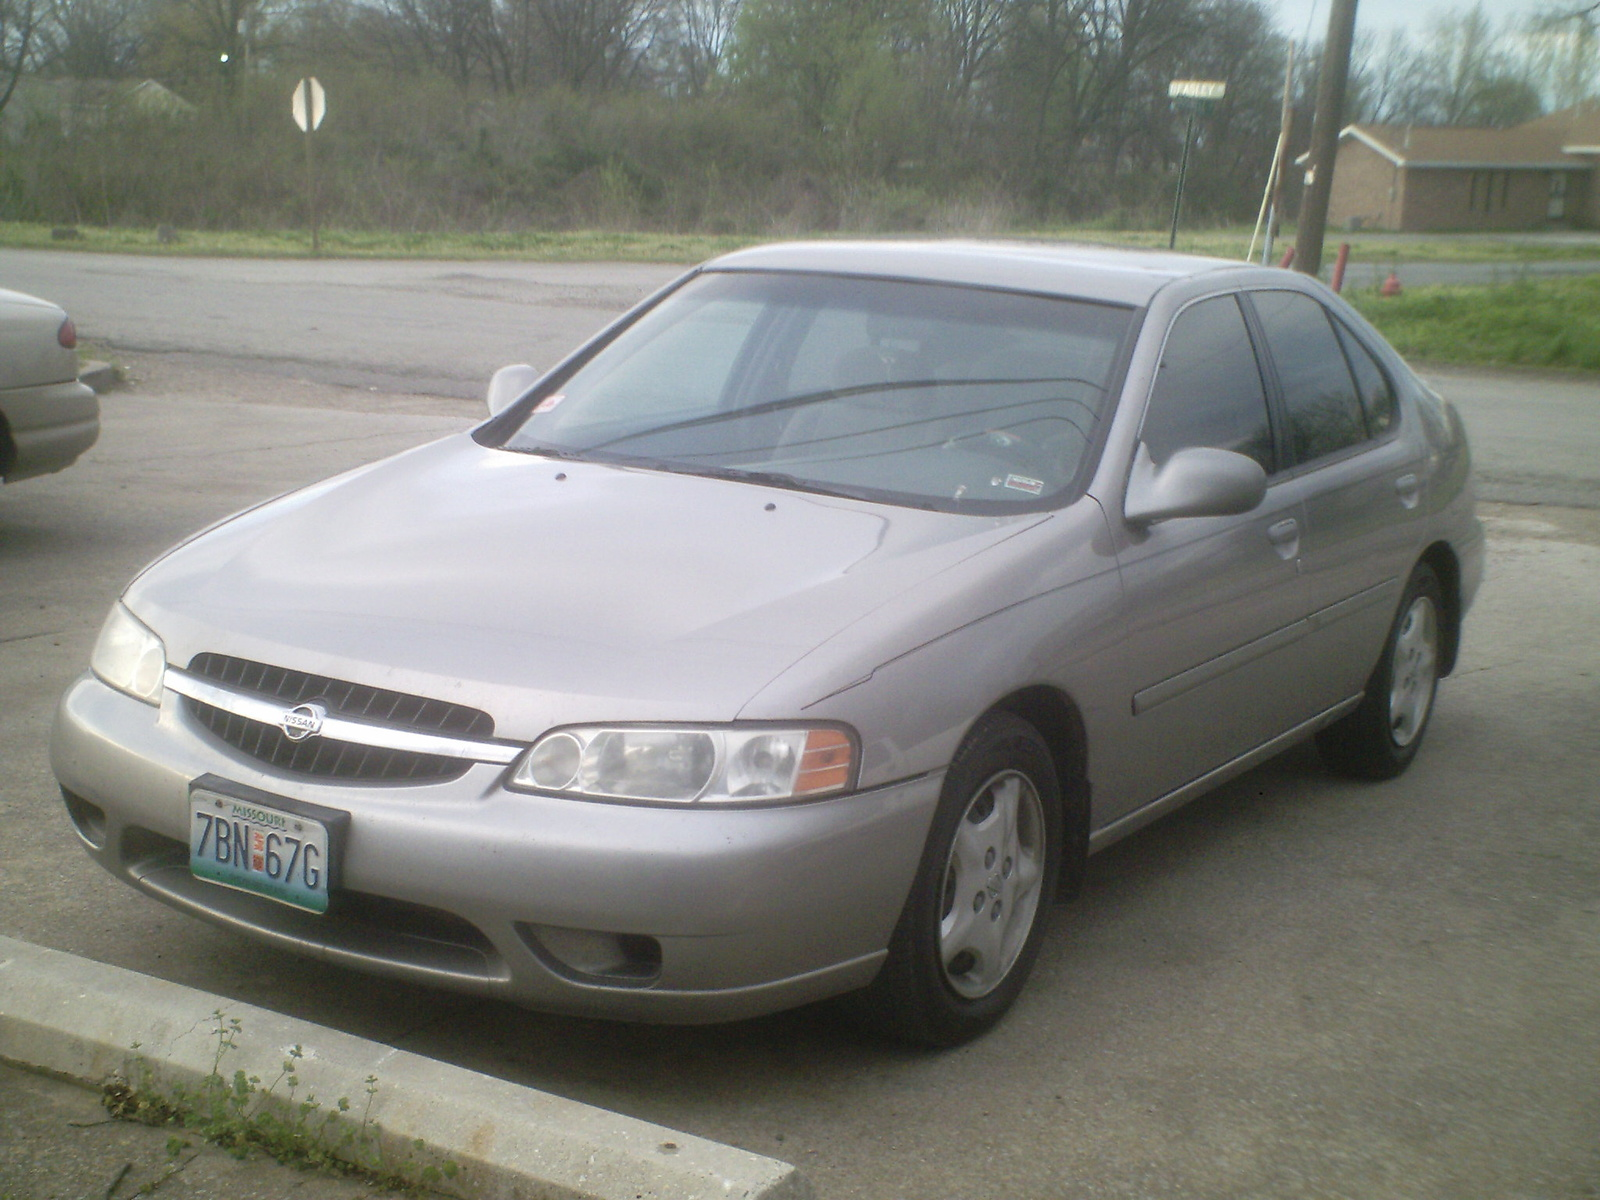 Picture of 2000 Nissan Altima GXE, exterior | 1600 x 1200 jpeg 558kB